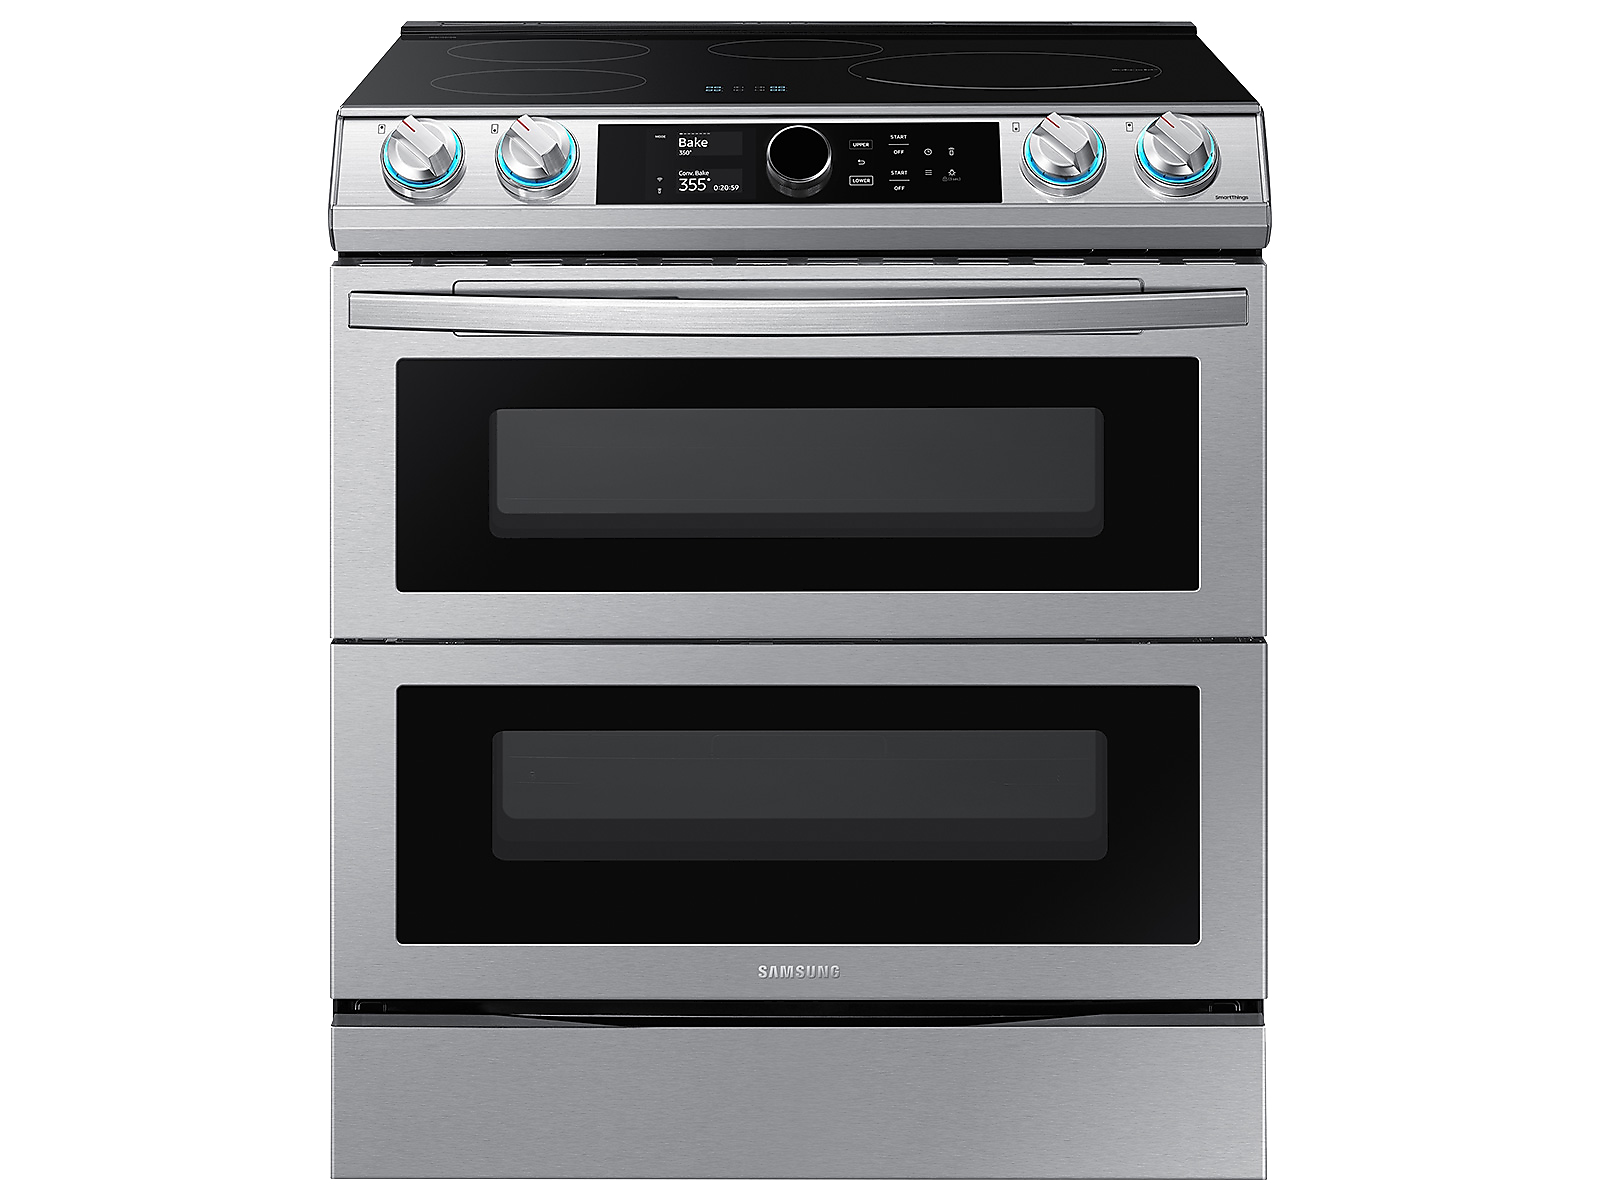 Samsung 6.3 cu. ft. Smart Slide-induction Range with Flex Duo™, Smart Dial & Air Fry in Silver(NE63T8951SS/AA)